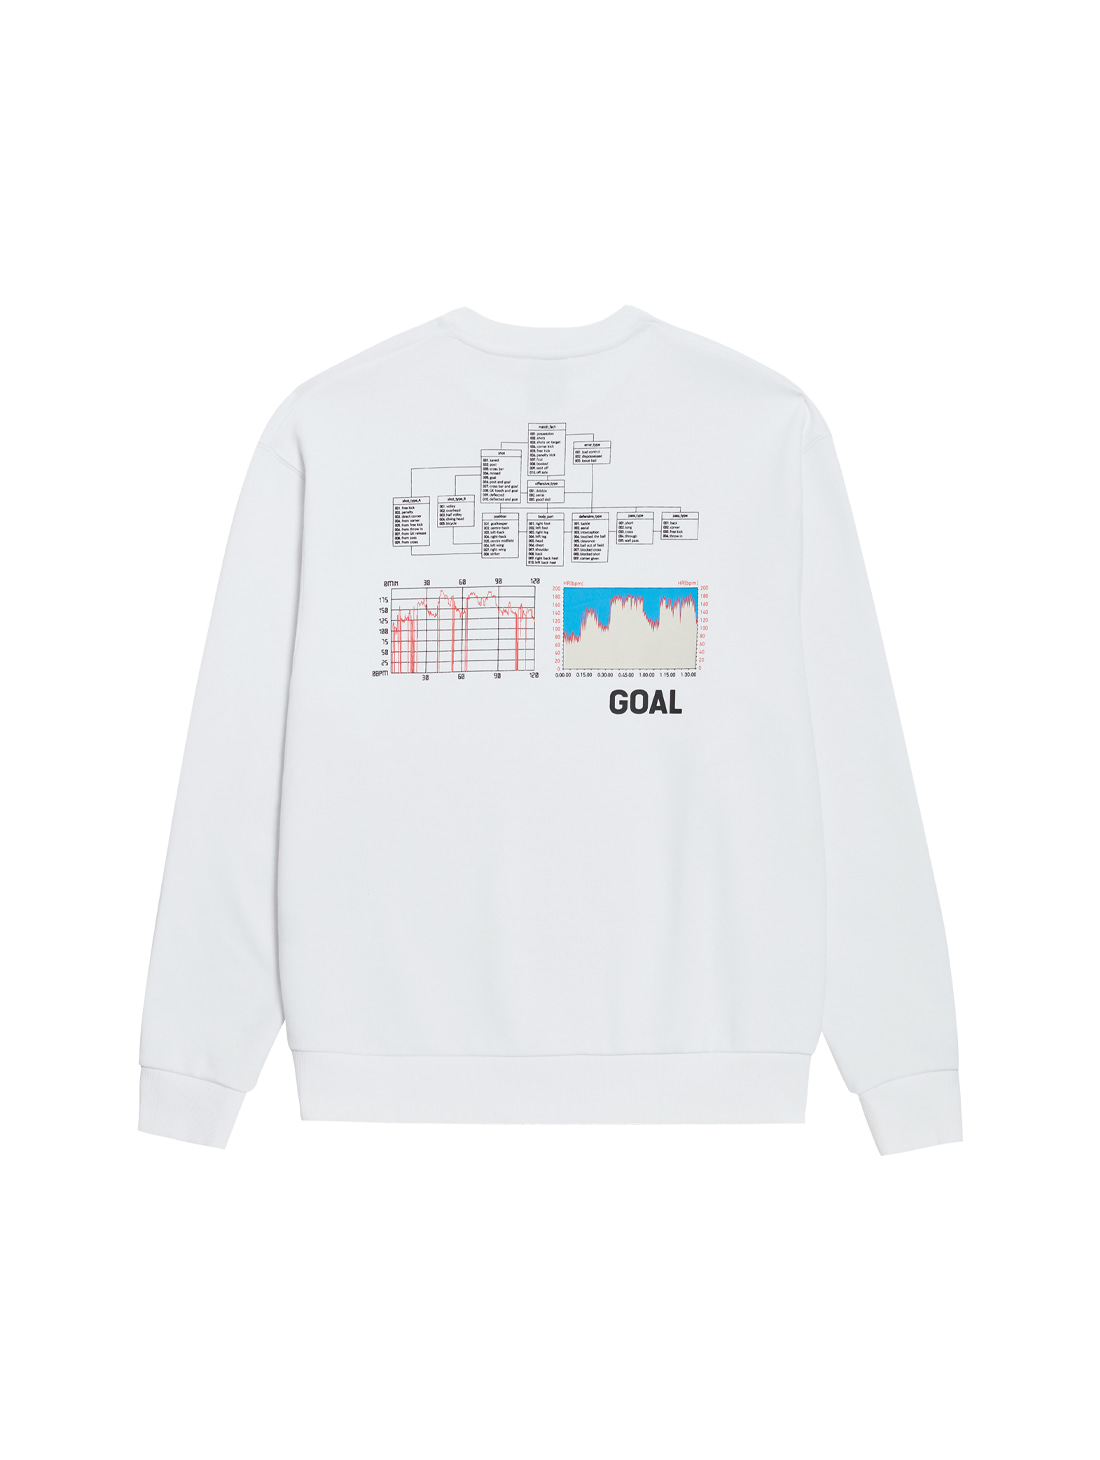 PULSE GRAPHIC SWEATSHIRT - WHITE